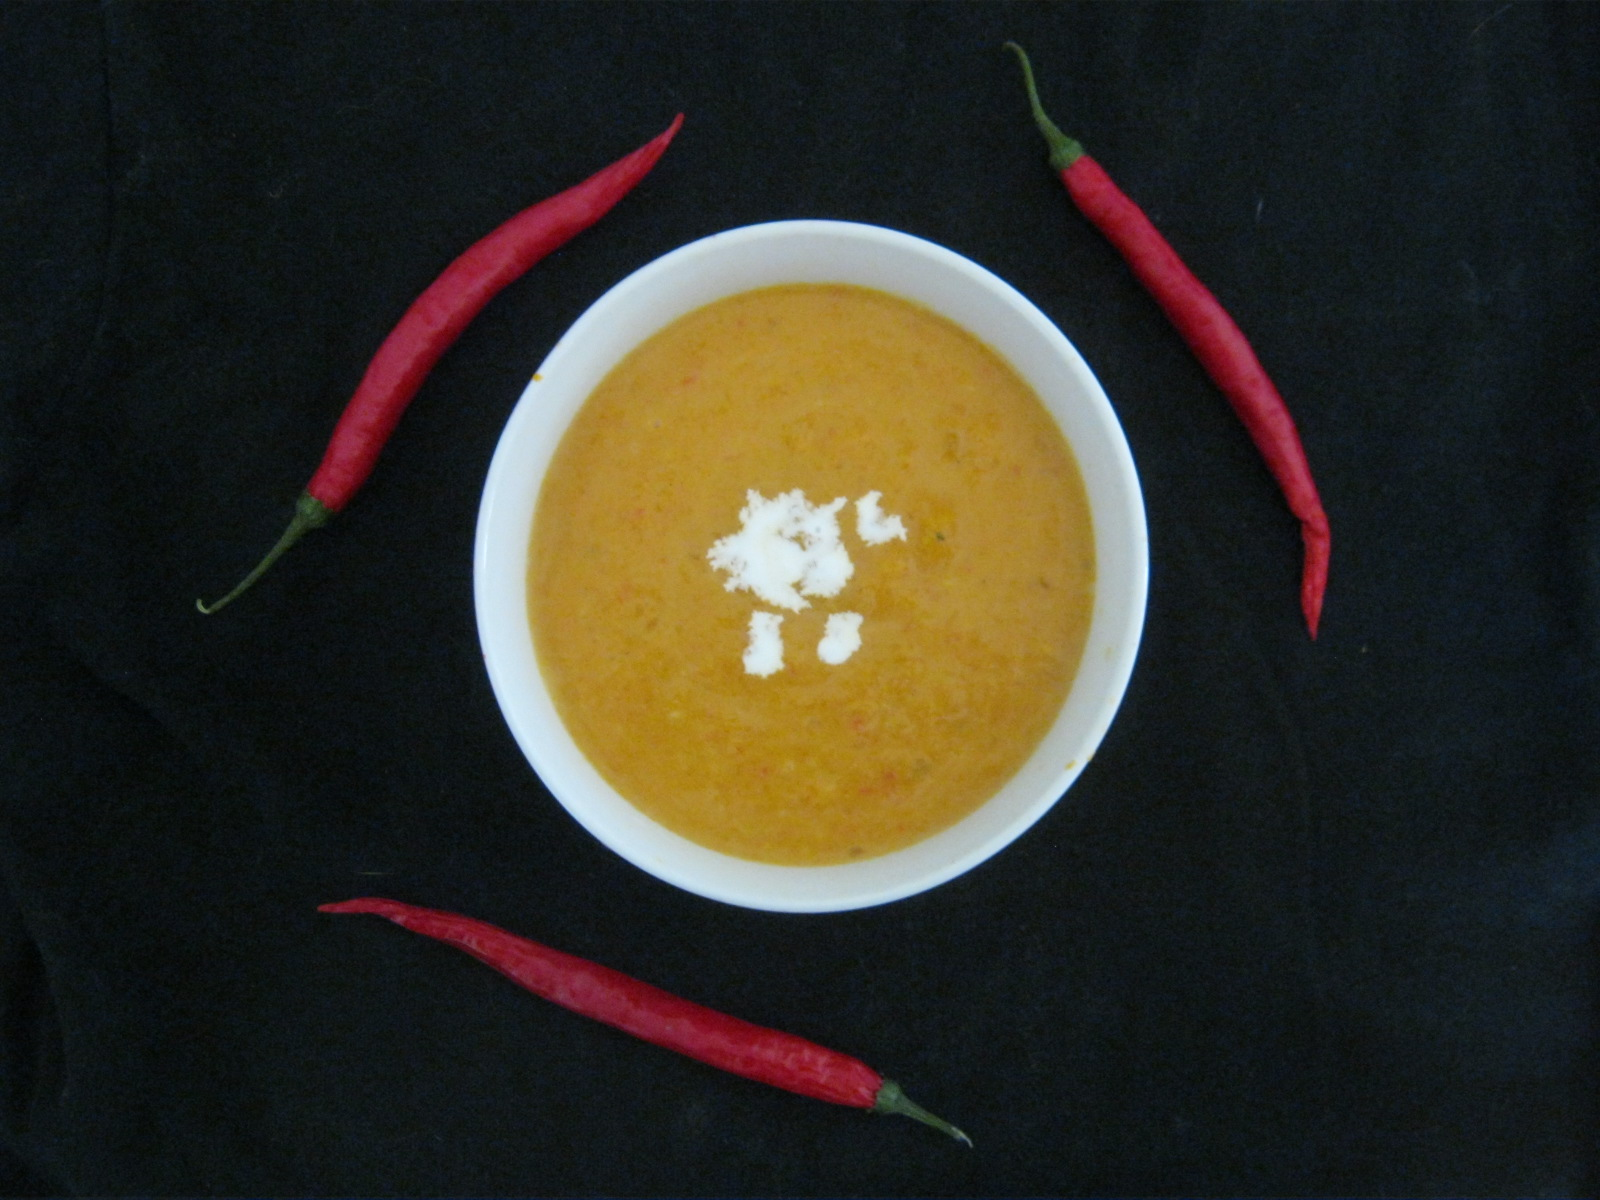 Have a look at our Traditional South African Butternut Soup